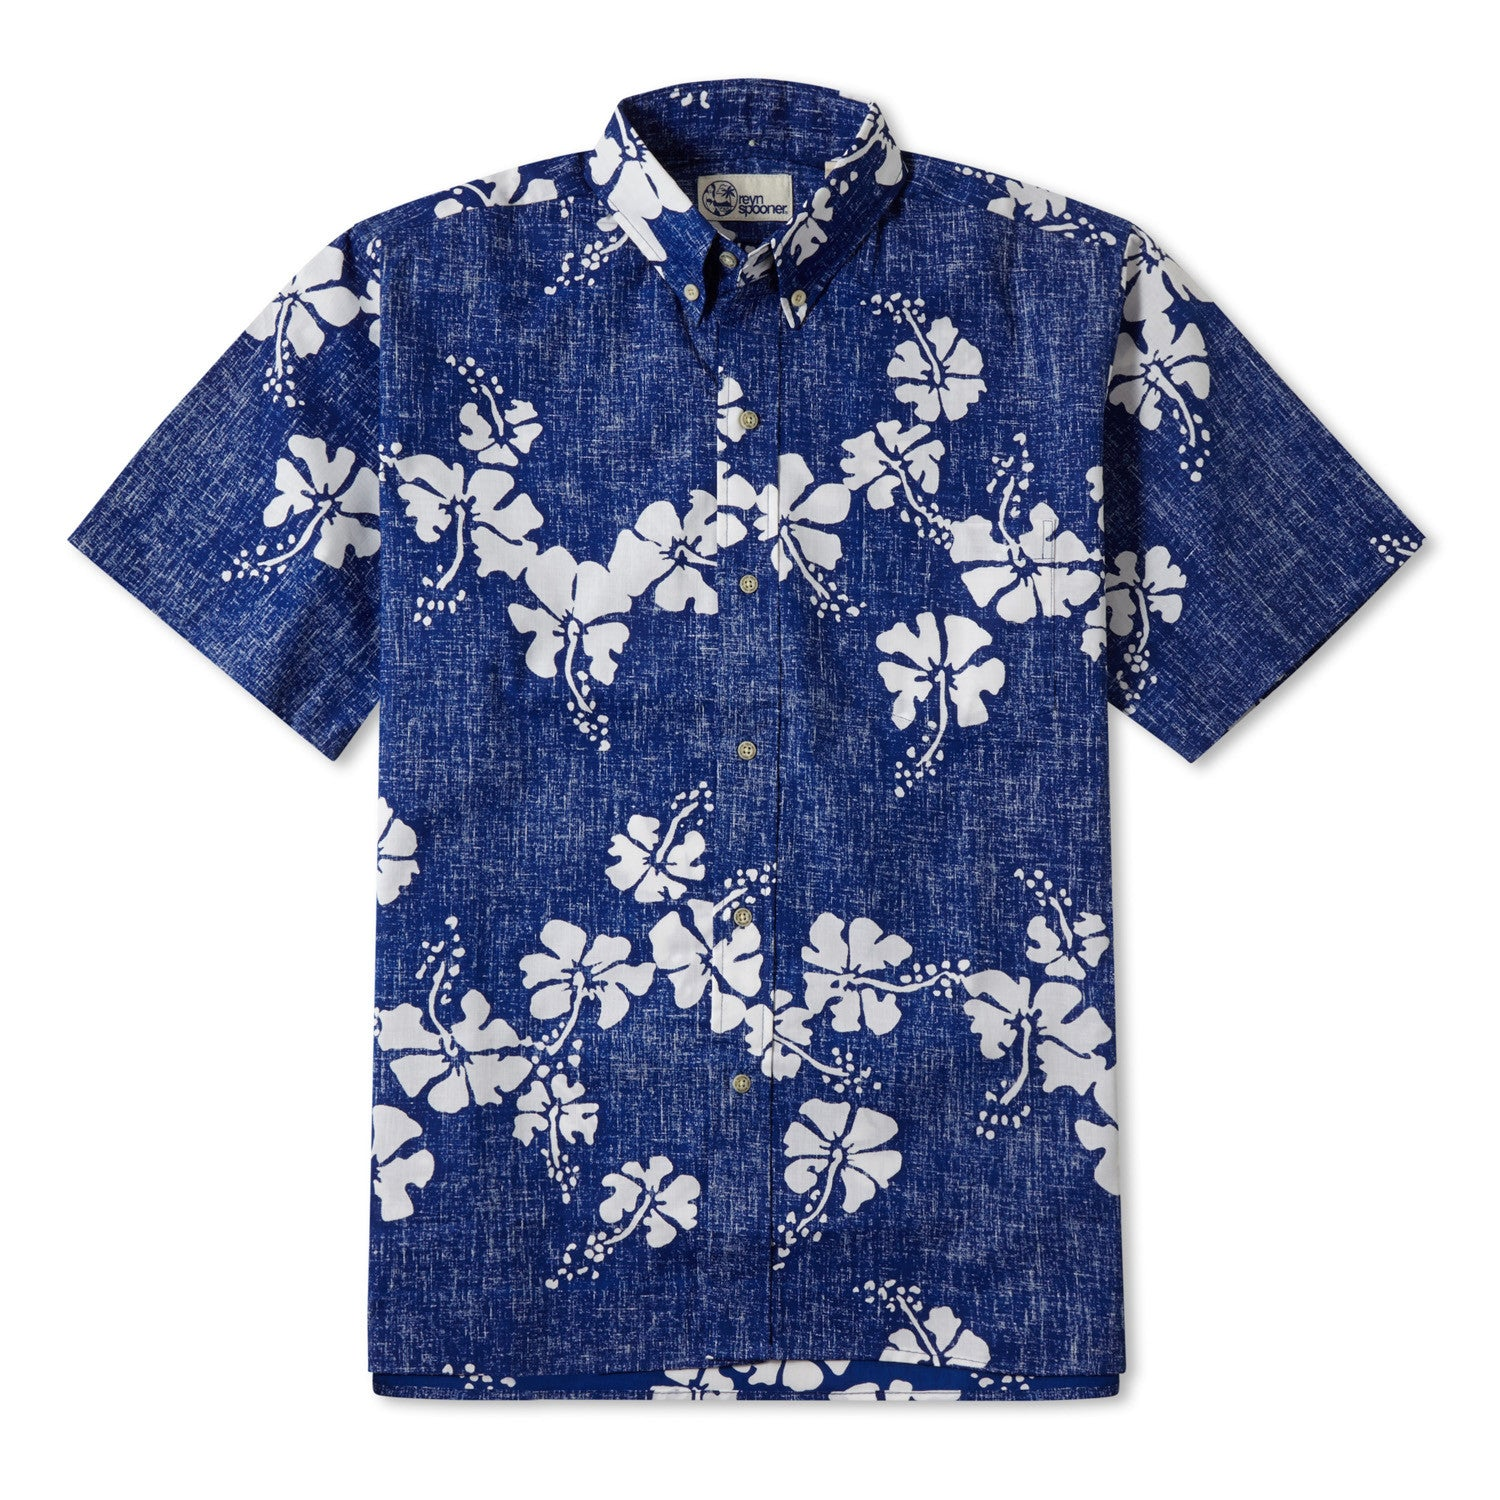 50Th State Flower / Classic Fit Button Front Shirt, Cotton/Polyester, For Men, 2XL, Blue, From Reyn Spooner